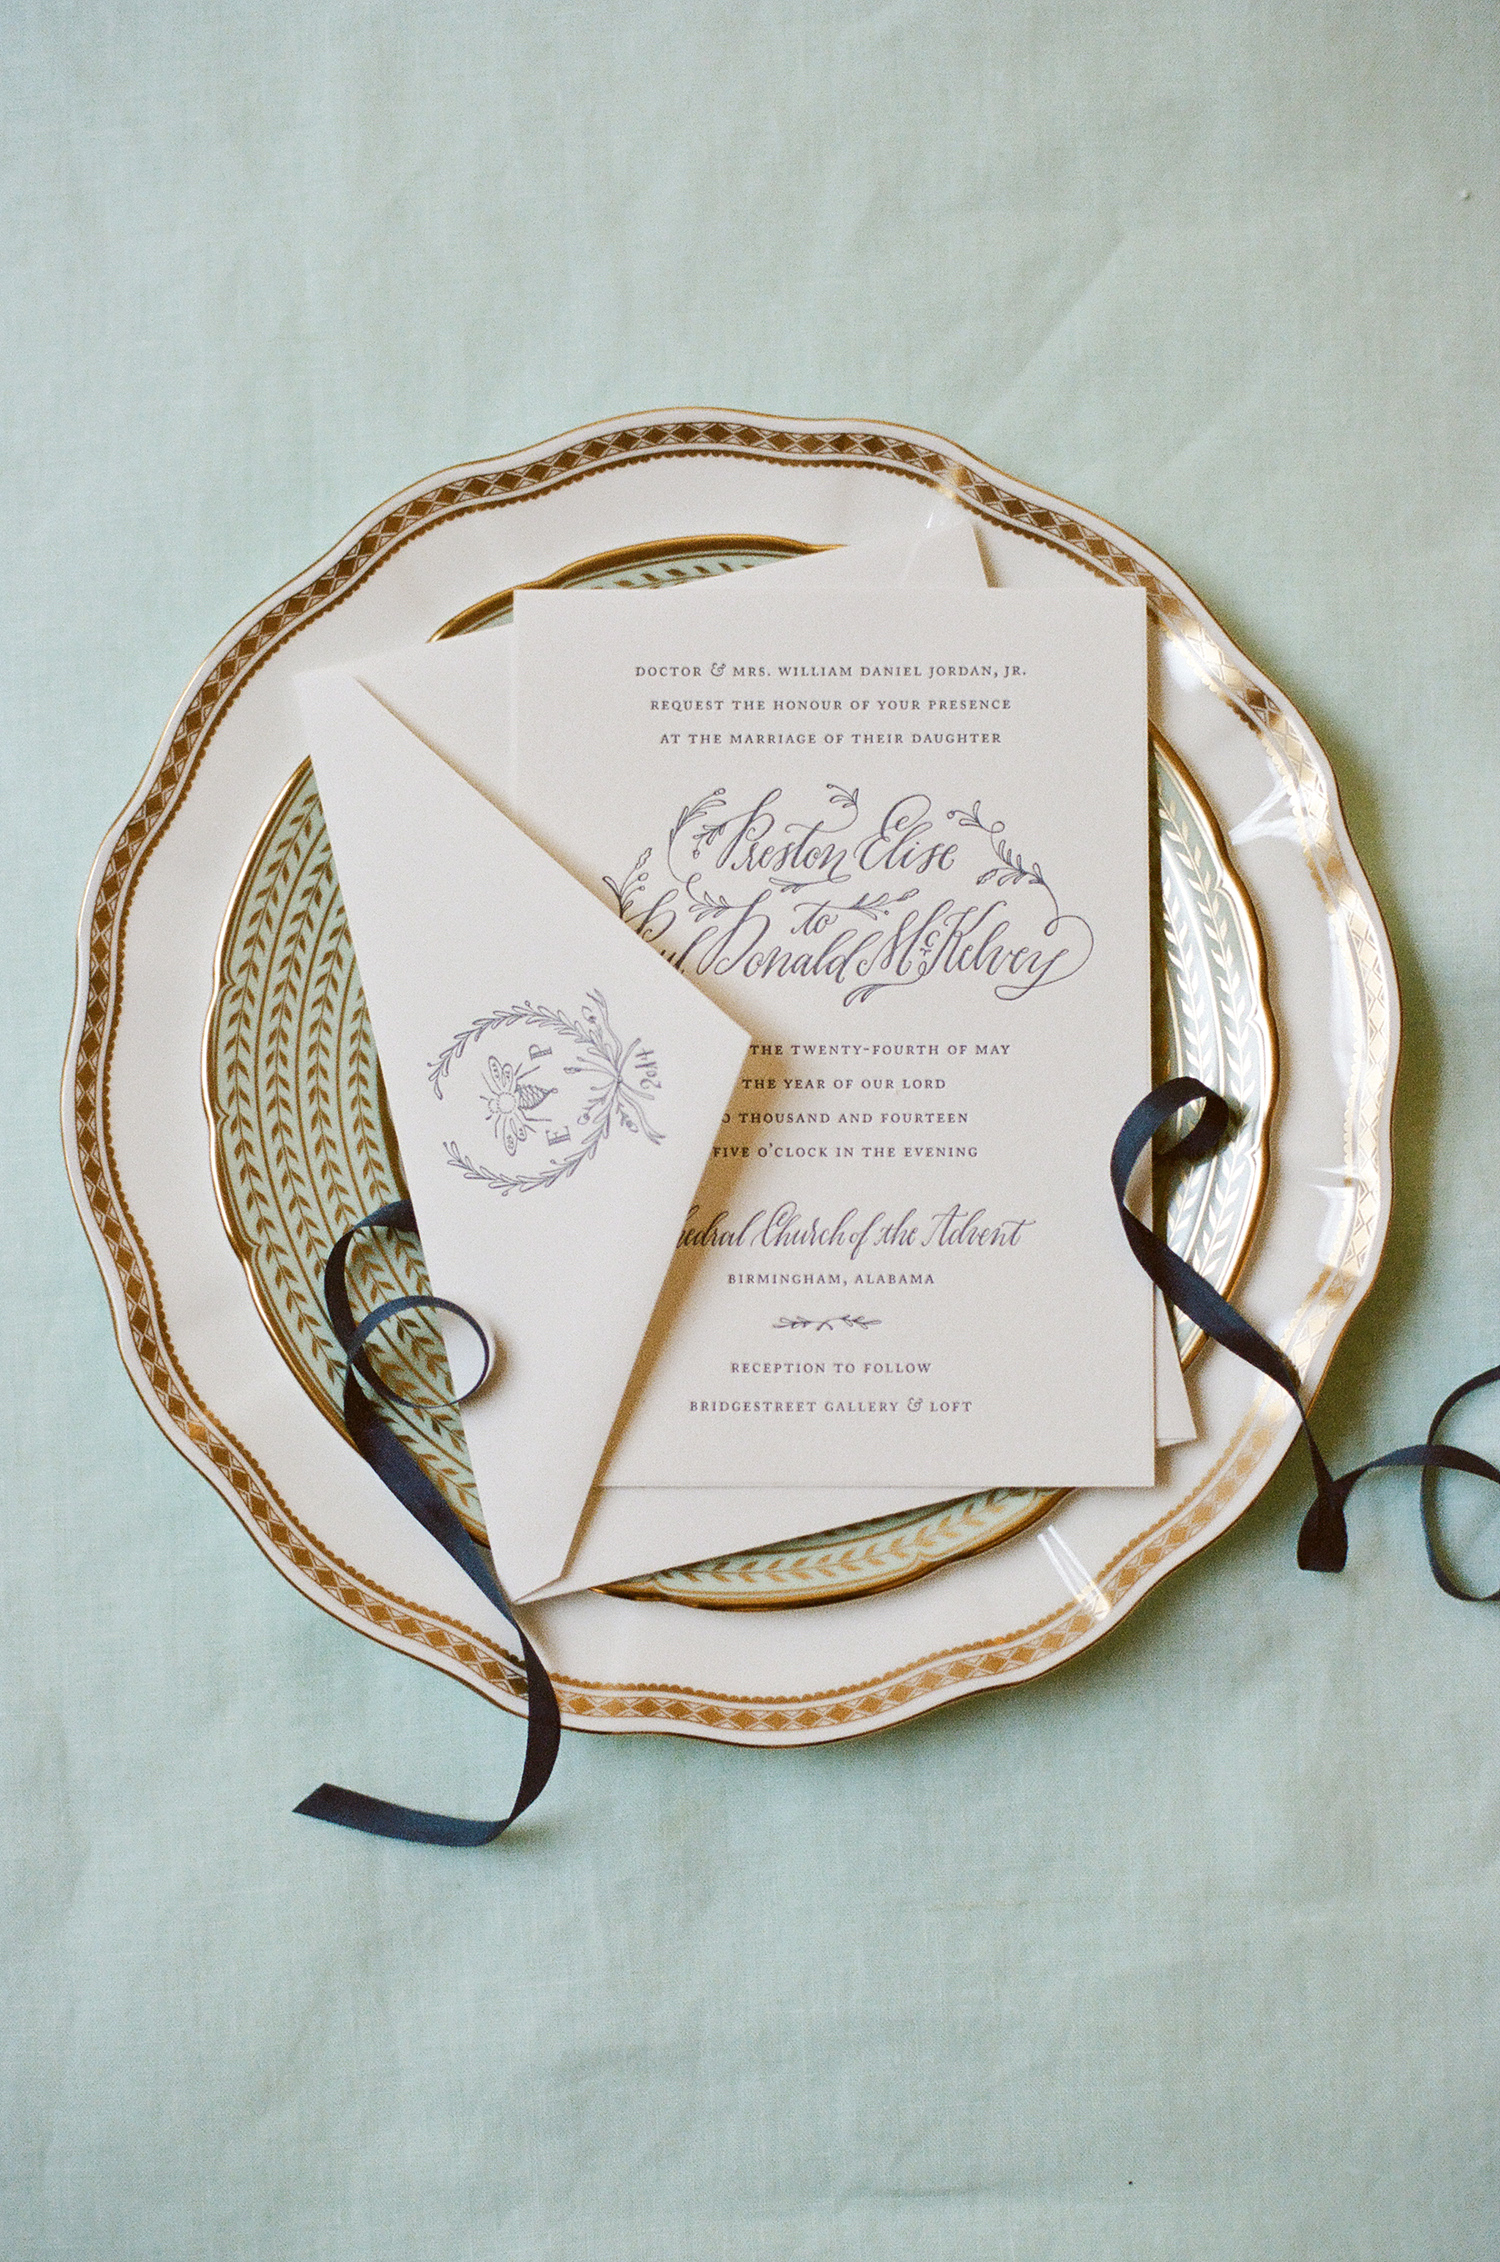 bee wedding ideas invitation on decorative plate